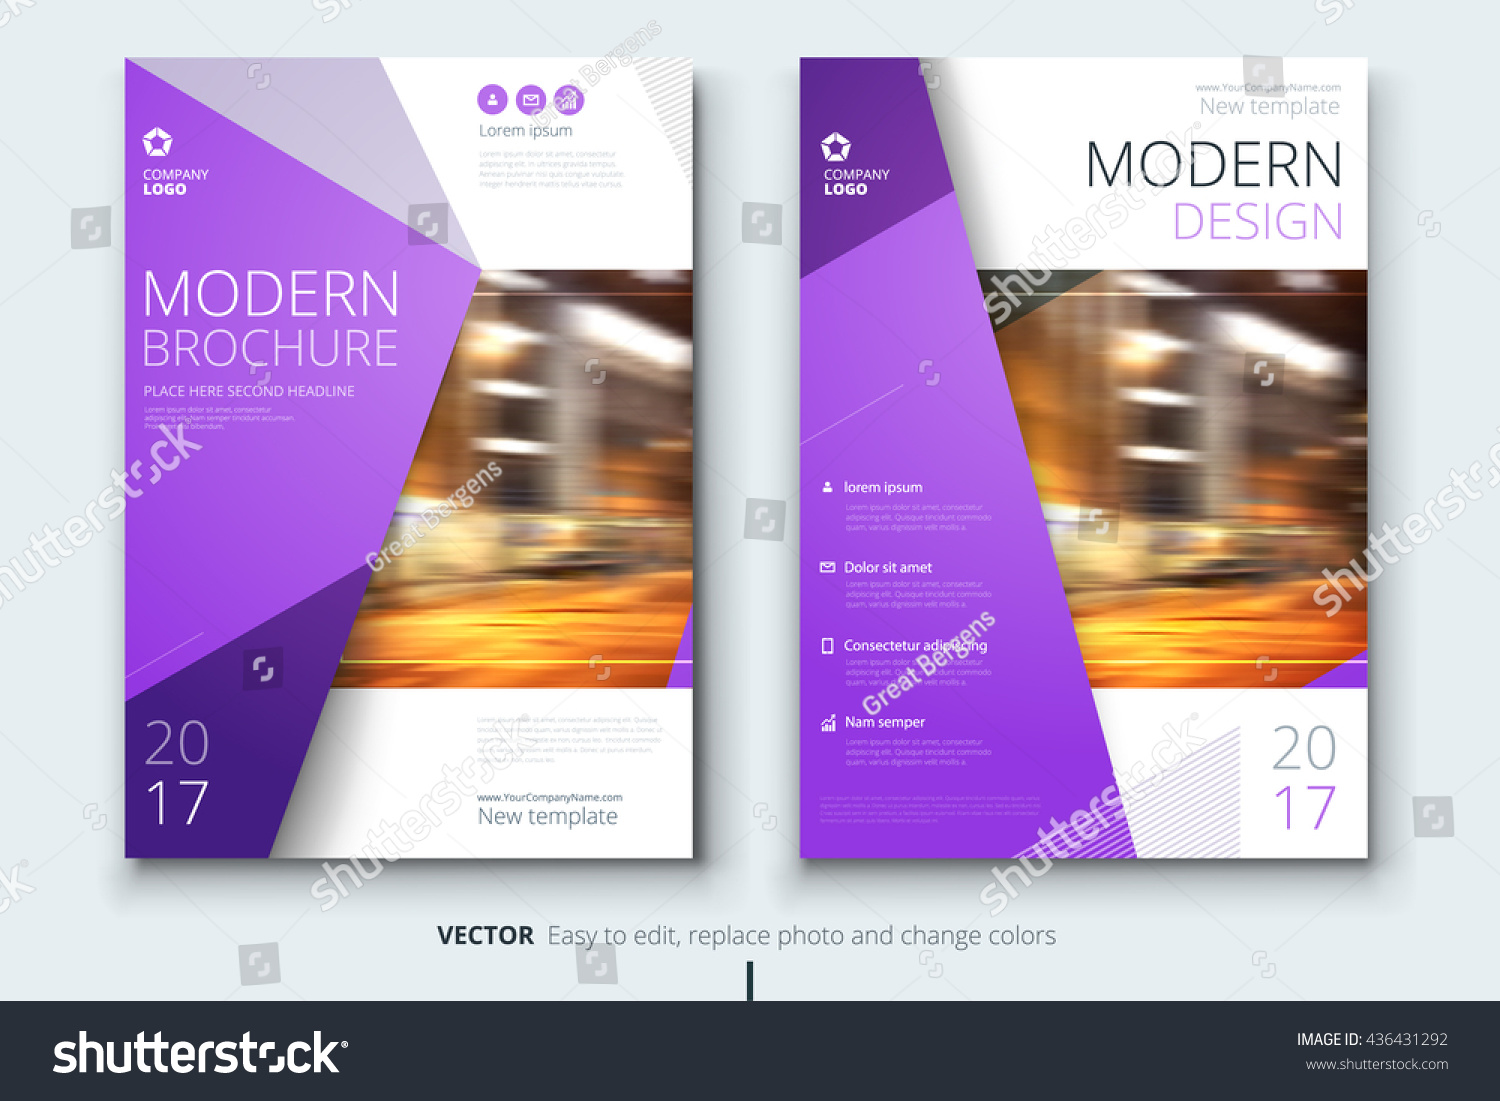 template for brochure design - brochure design corporate business template annual stock